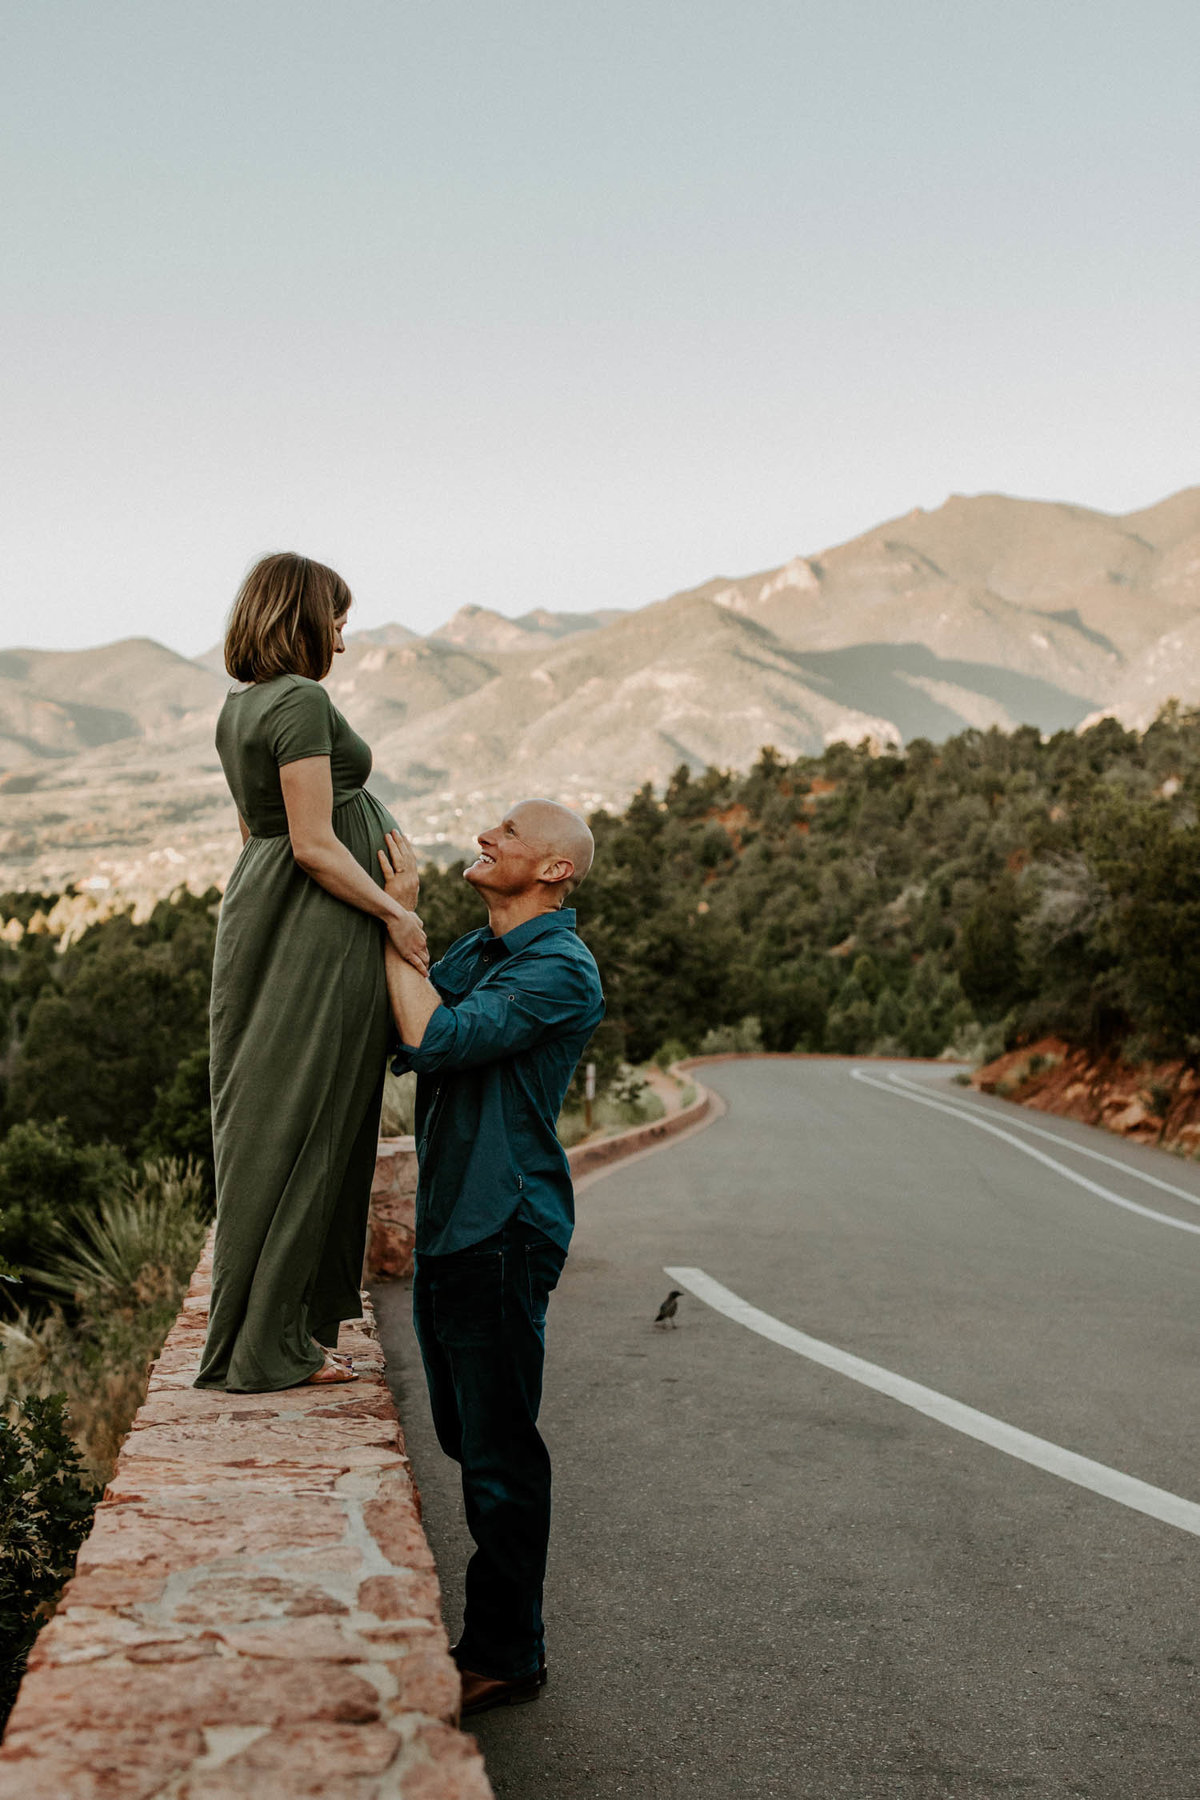 colorado-springs-garden-of-the-gods-sunrise-couples-adventure-session-colorado-elopement-photographer-11